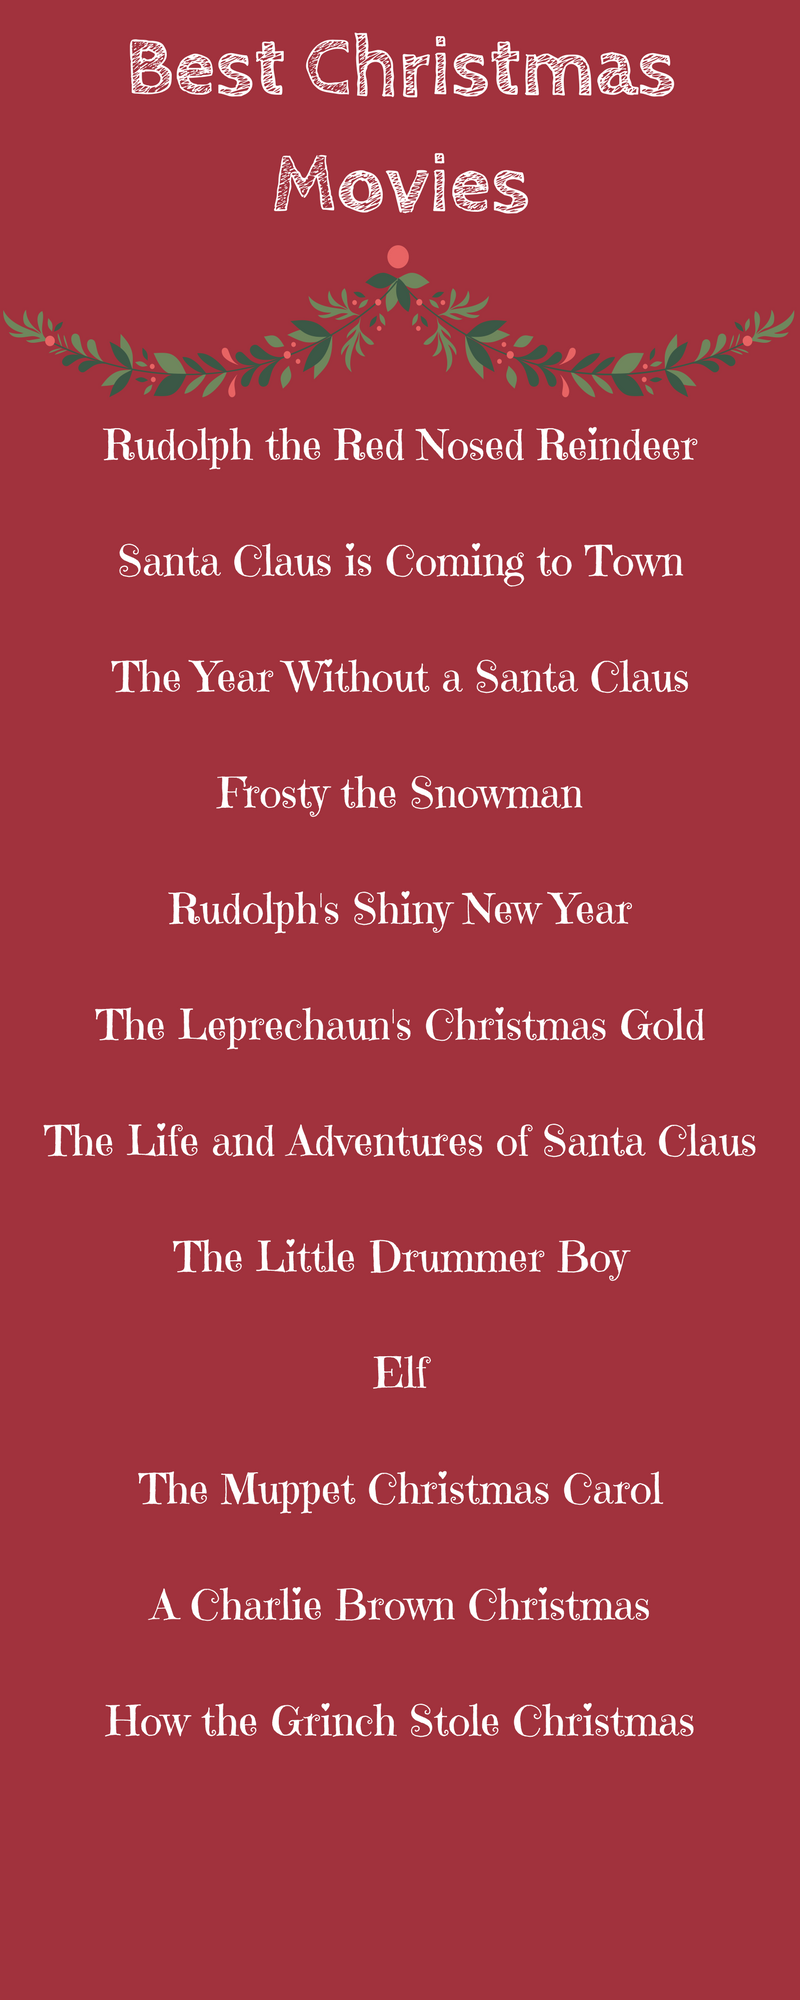 Best Christmas Movies.png